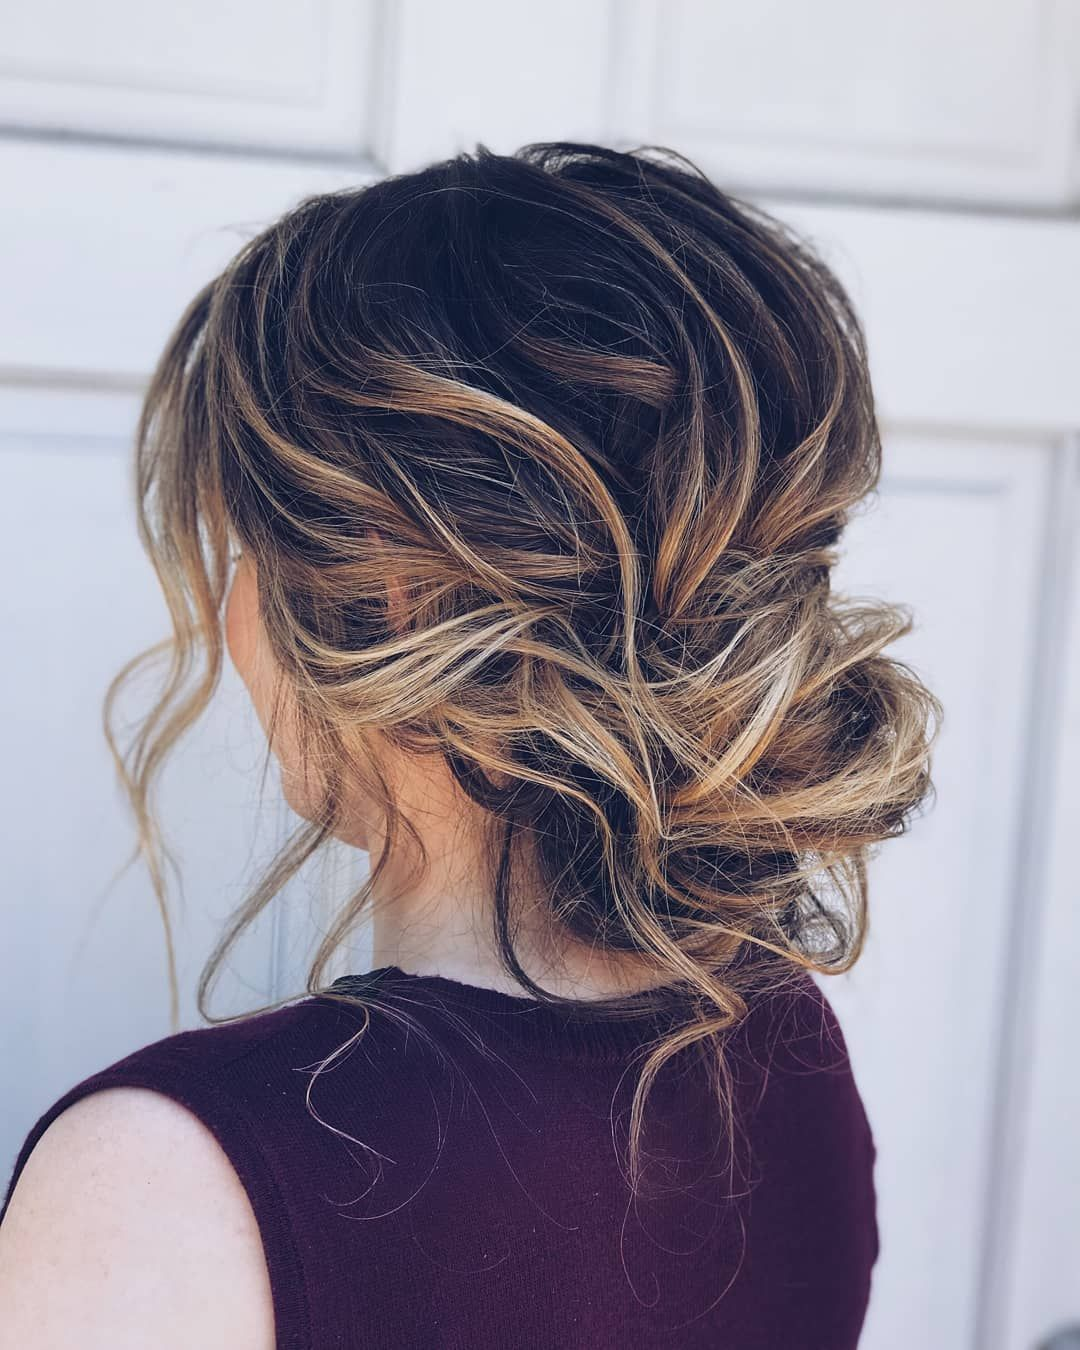 Romantic Loose Drapey Textured Effortless Updo Wedding Hairstyles Updo Hairstyles Messy Updos Weddingha Hair Styles Messy Wedding Hair Loose Wedding Hair